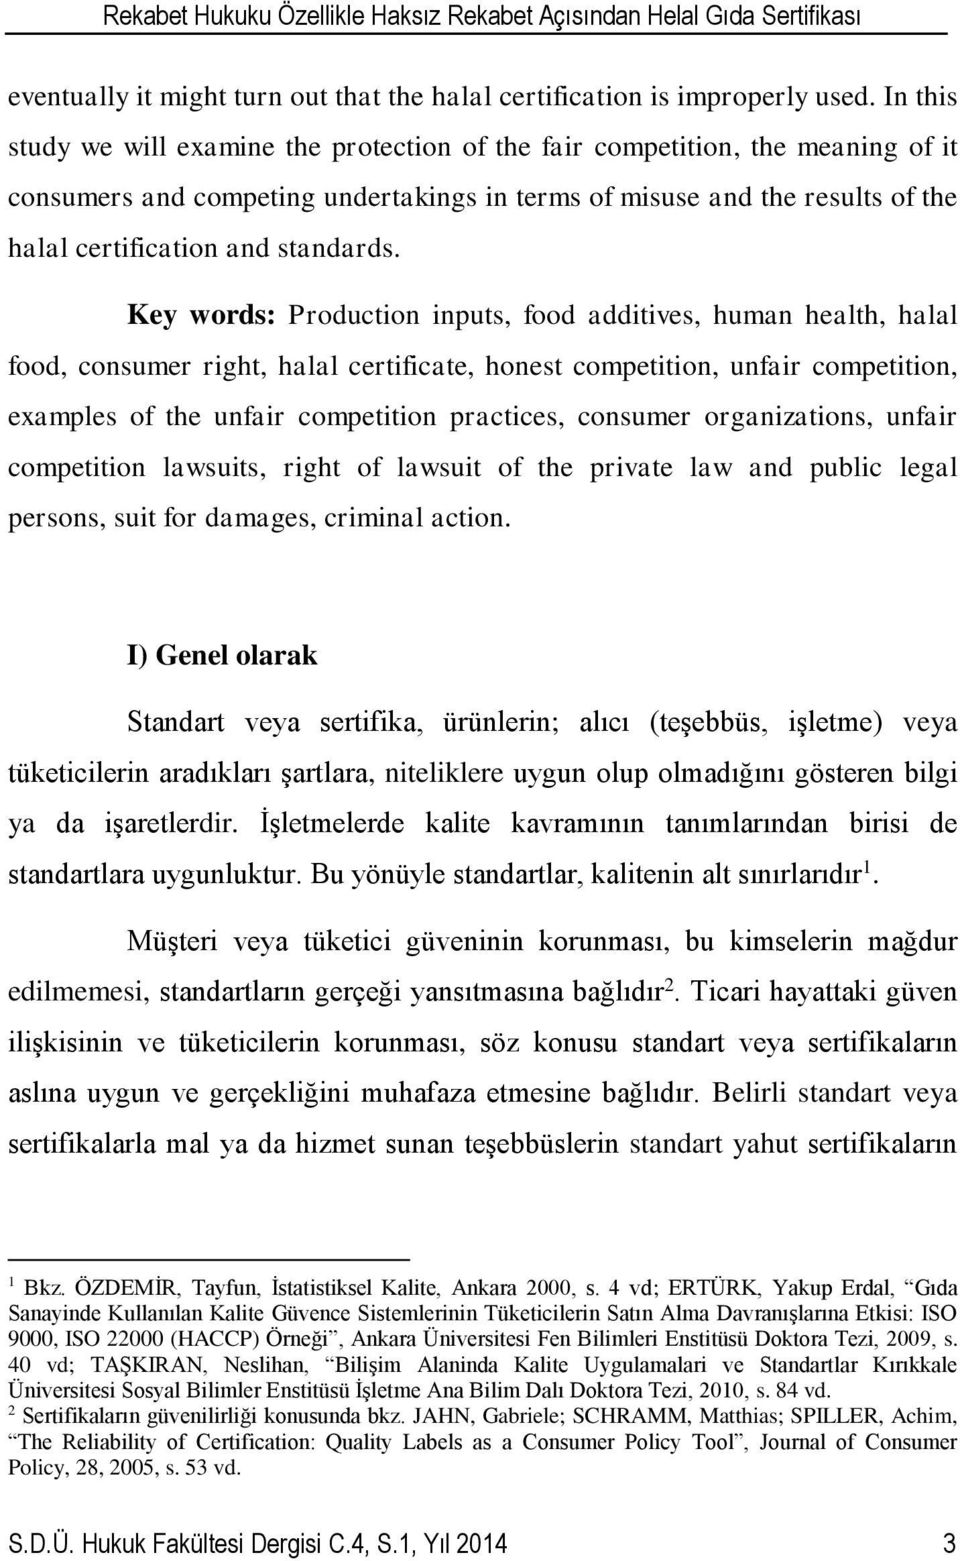 jahn schramm spiller reliability of certification pdf Nization manages the control and certification of prod- ucts in order to guarantee the quality and/or benefits of the products claims (crespi & marette, 2001 hatanaka.